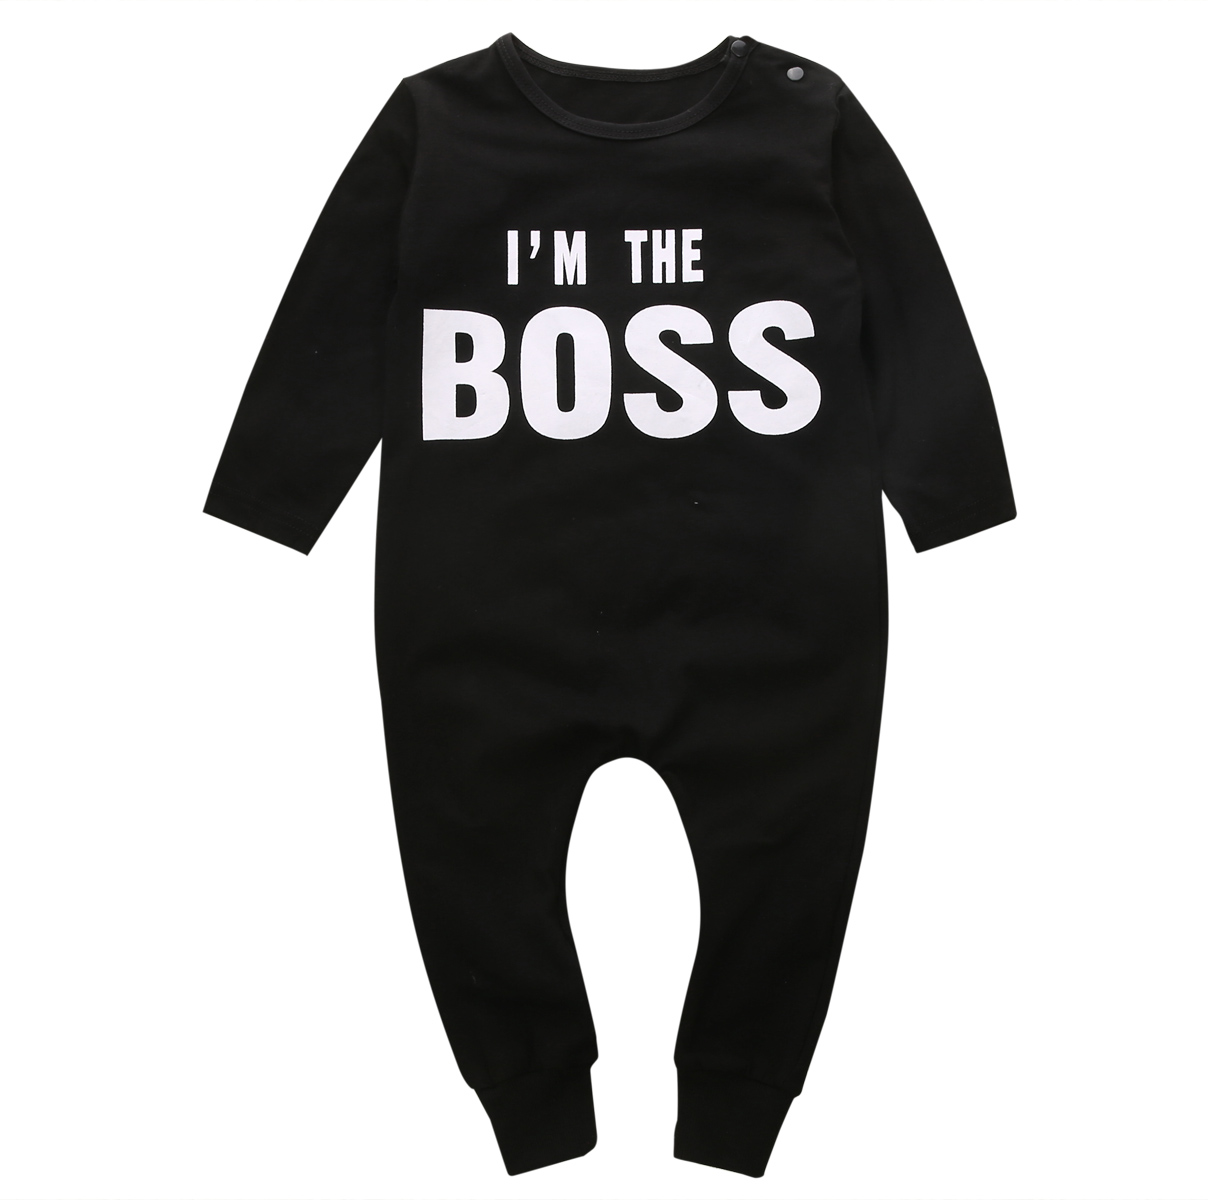 I'M The Boss Newborn Infant Baby Boys Girl Rompers Tollder Baby Long Sleeve Black Jumpsuit Playsuit Letter Clothing